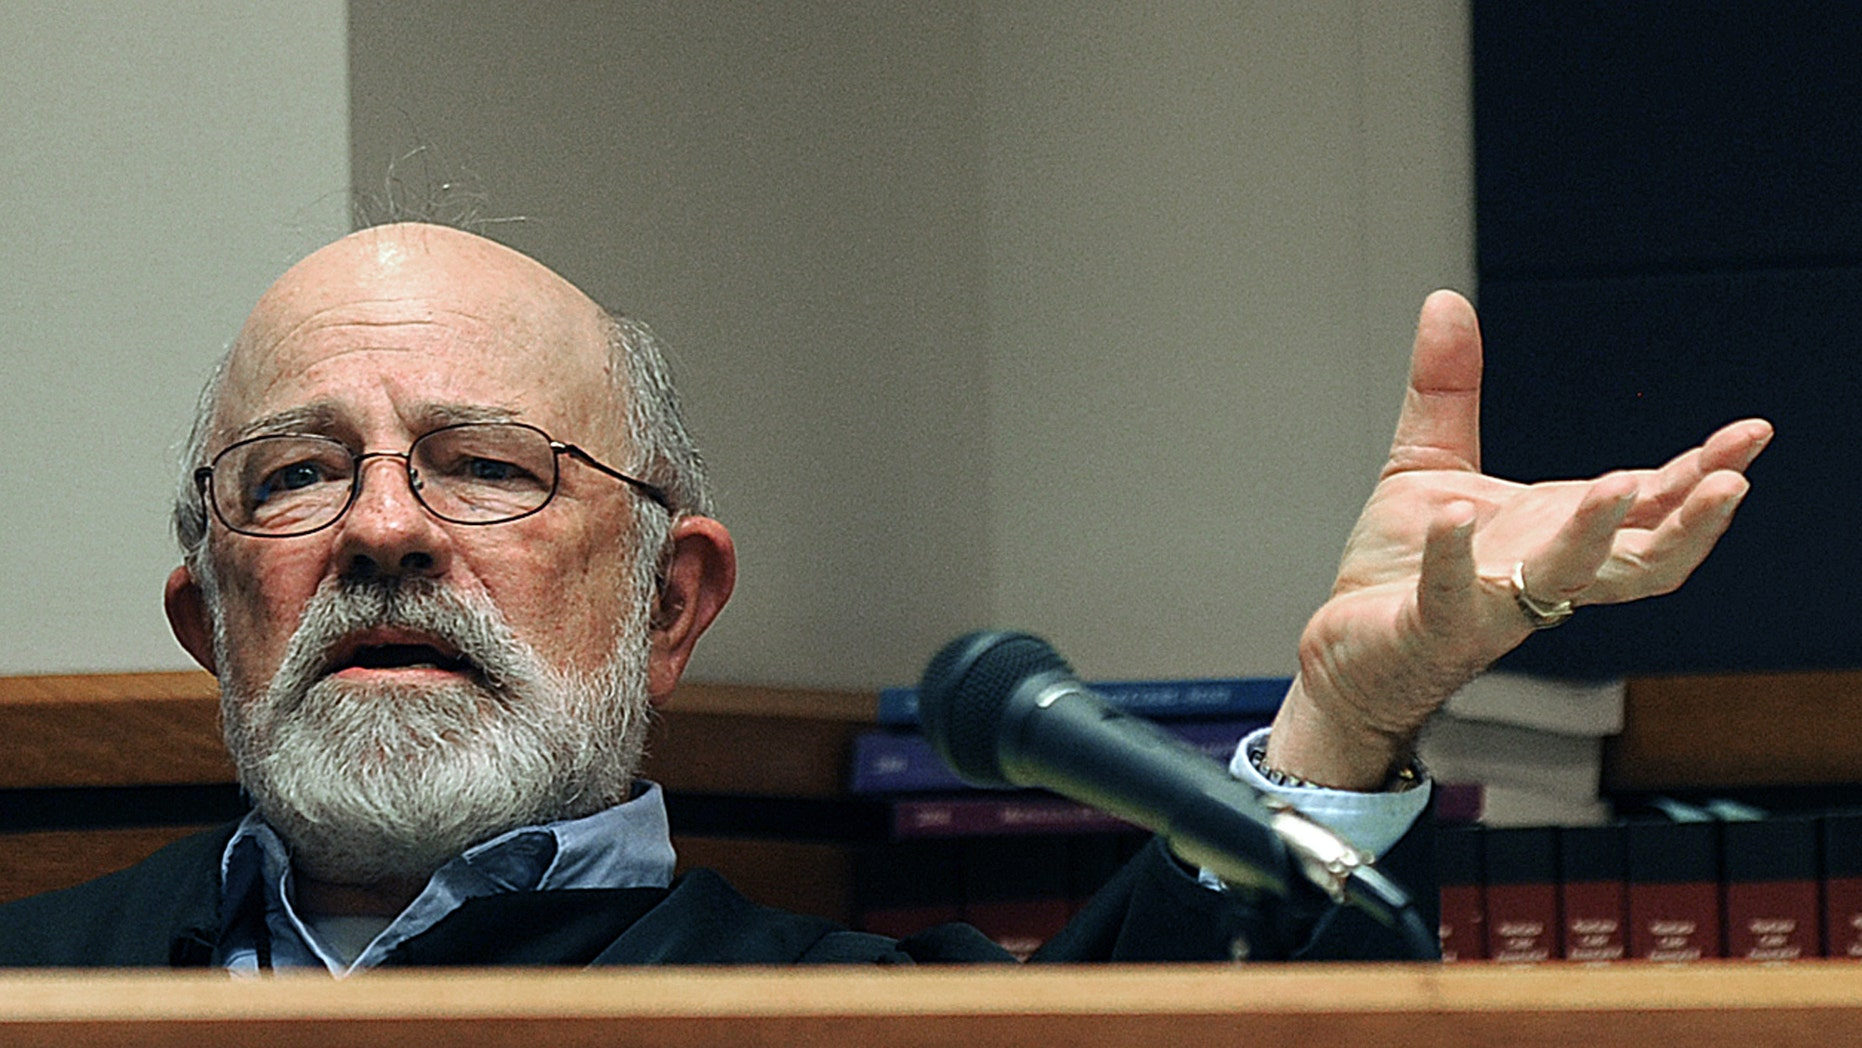 Undated file photo of District Judge G. Todd Baugh at a hearing in Great Falls, Mont.